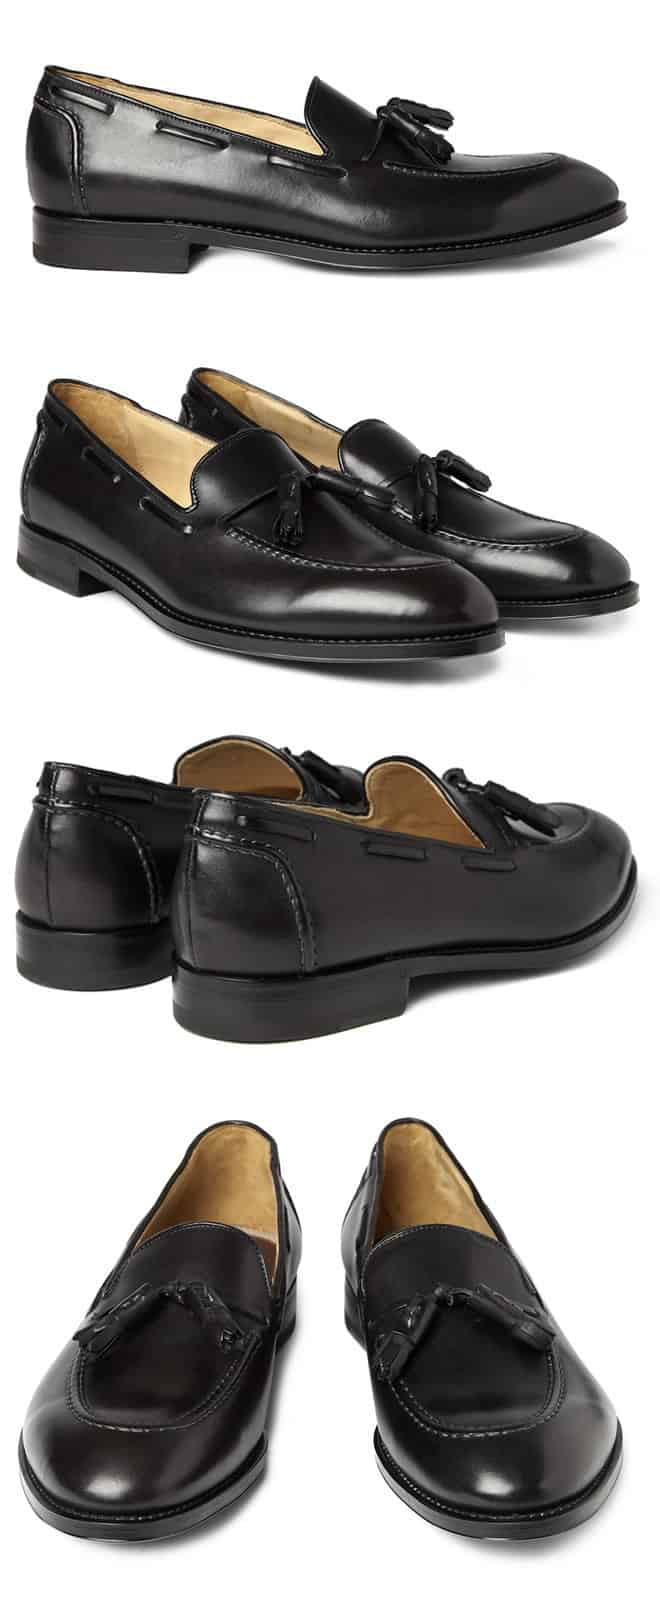 Paul Smith Black Tasseled Leather Loafers